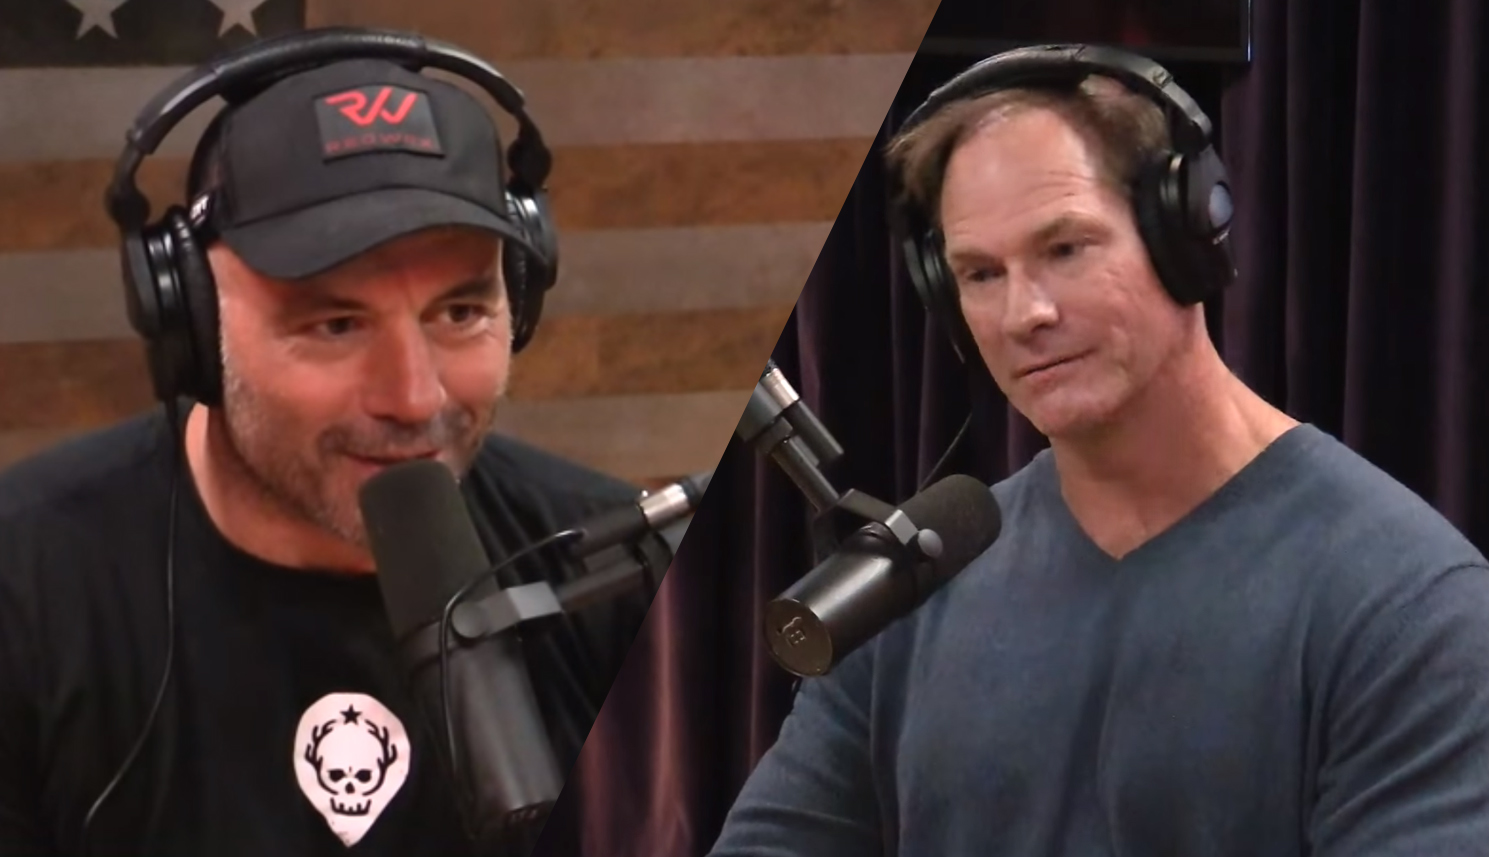 Recently featured on Joe Rogan Podcast